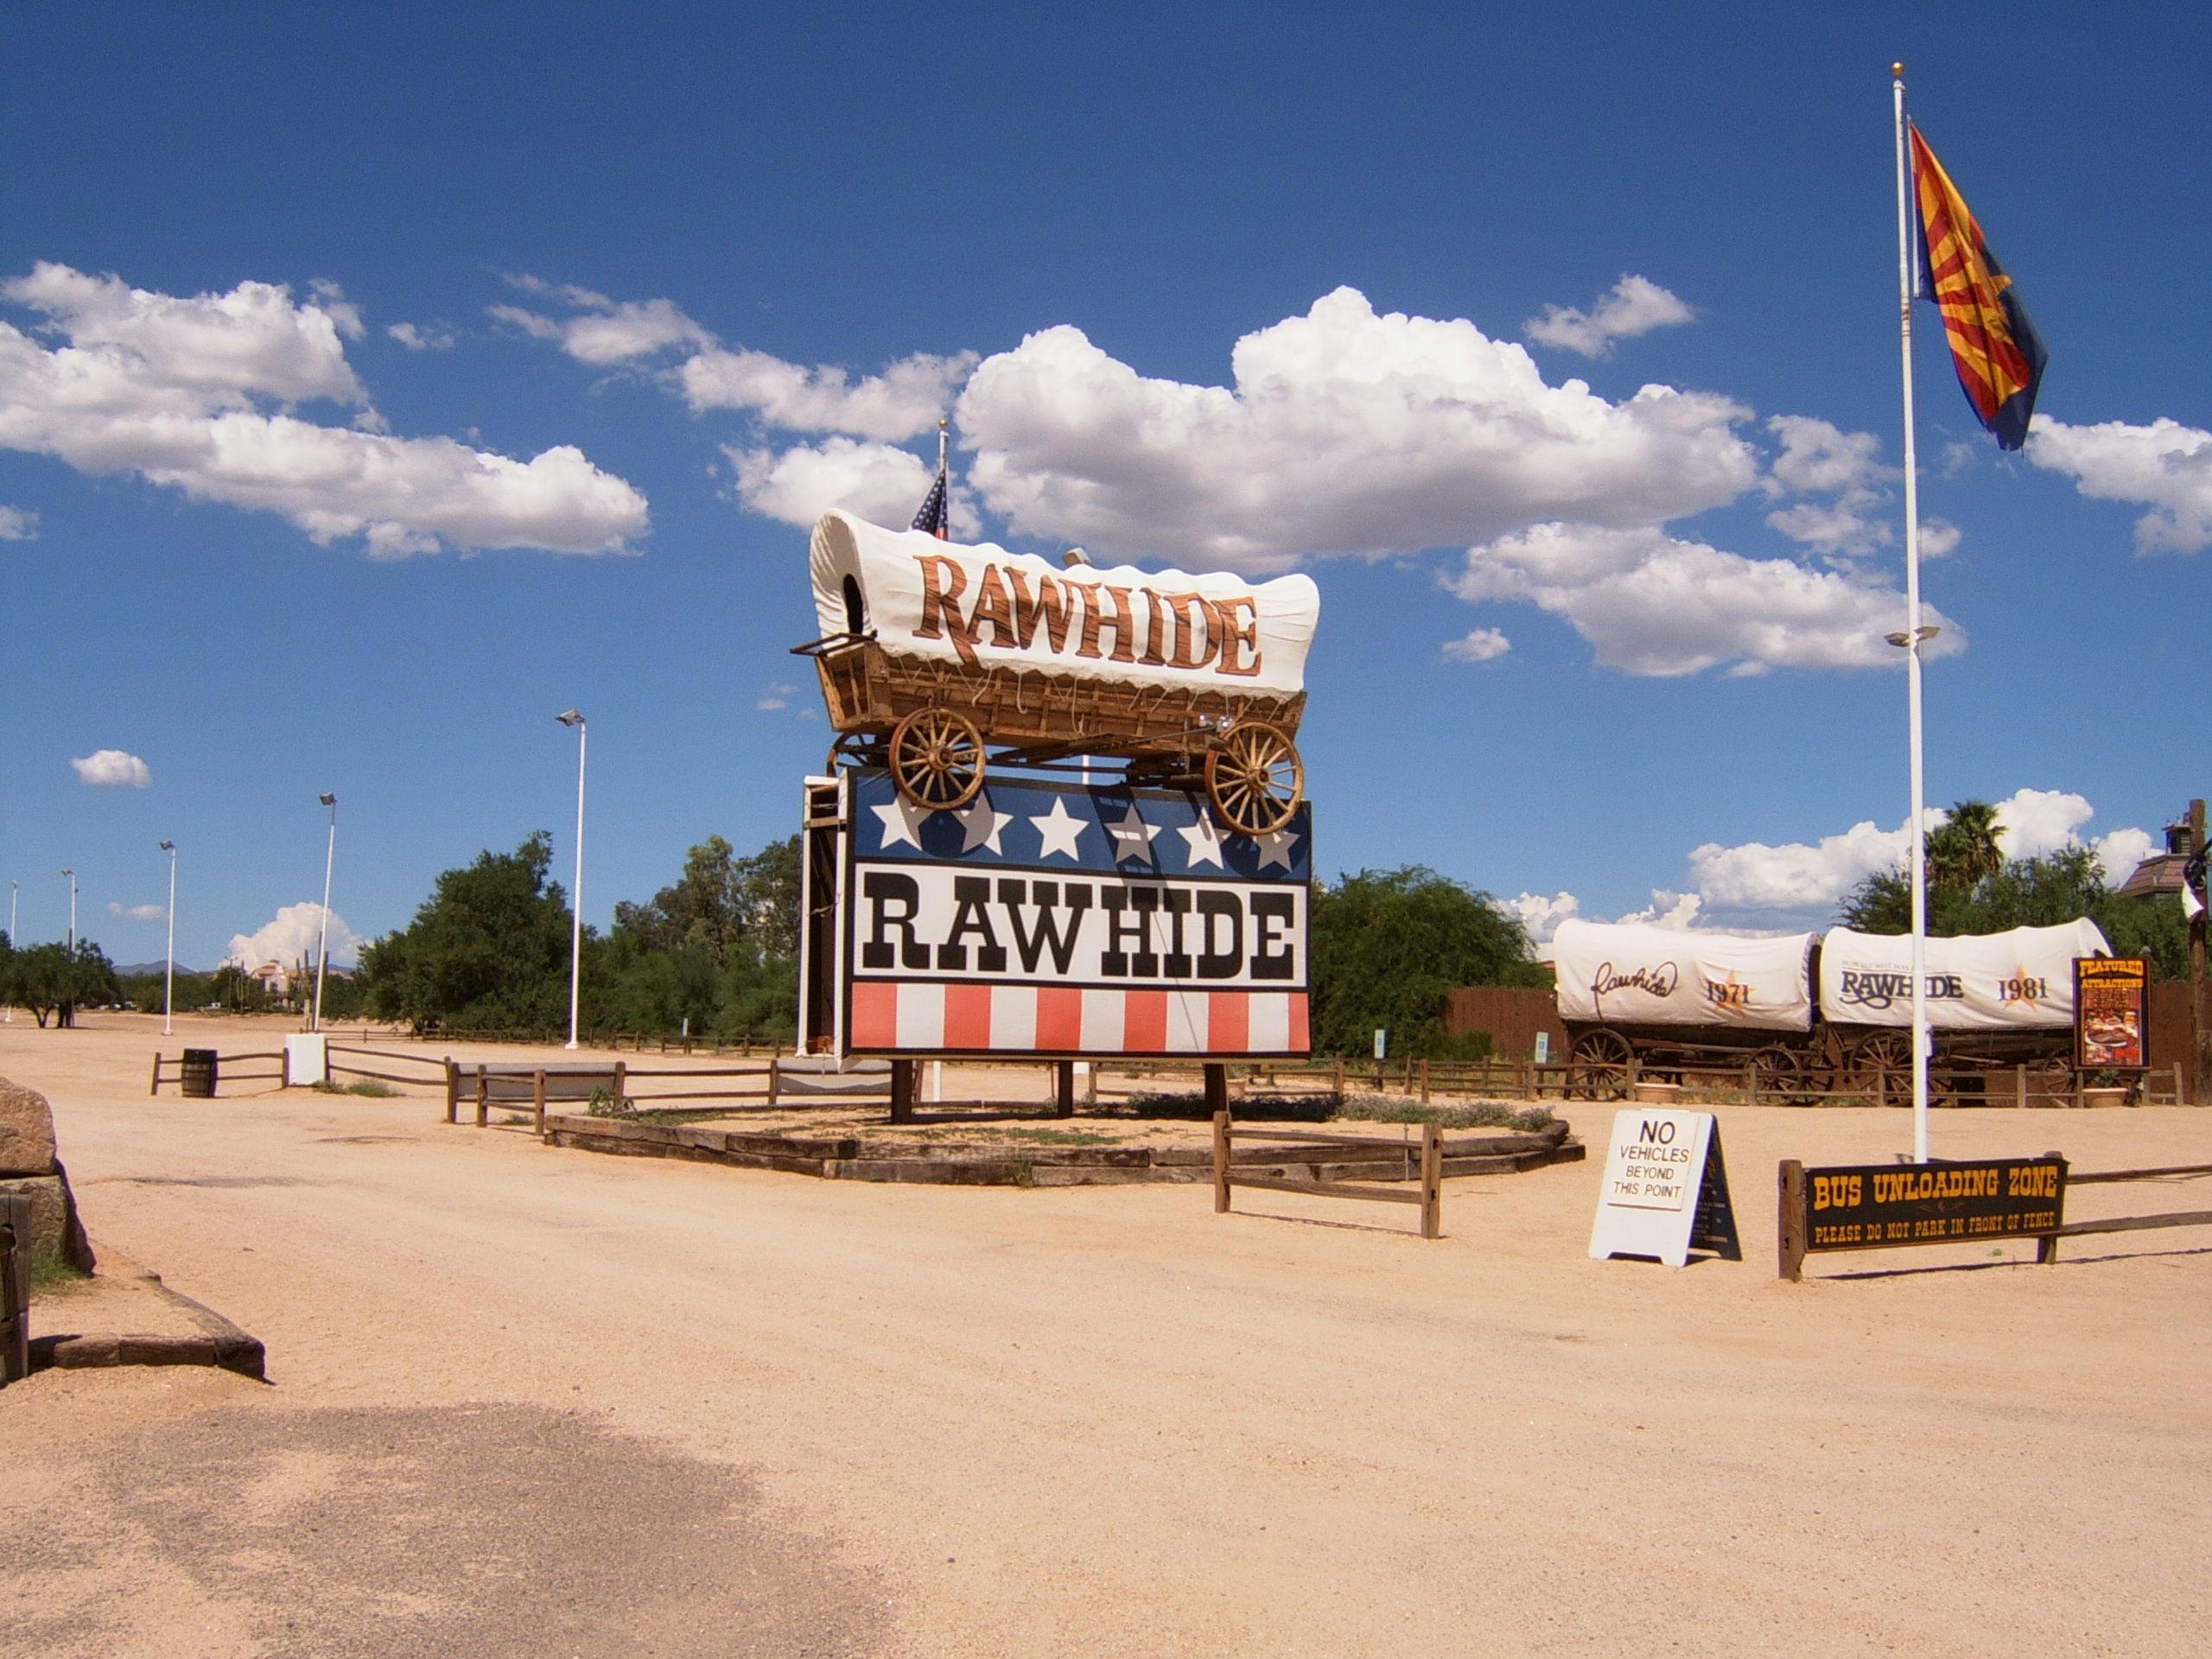 Rawhide Western Town Az Places I 39 Ve Been Pinterest Westerns Ghost Towns And Arizona